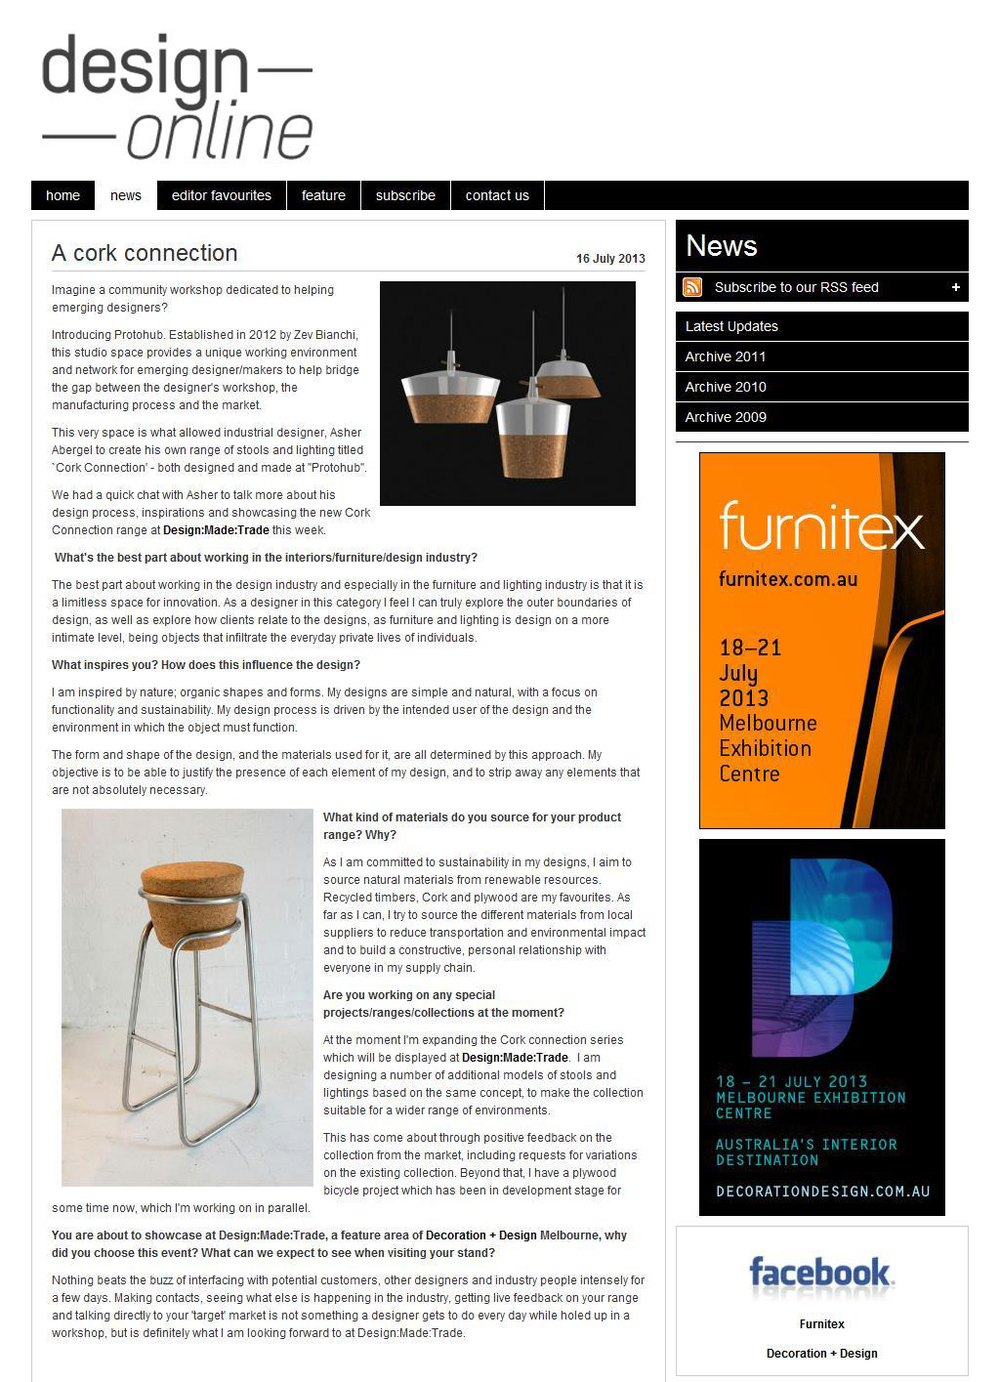 Design Online, July 2013